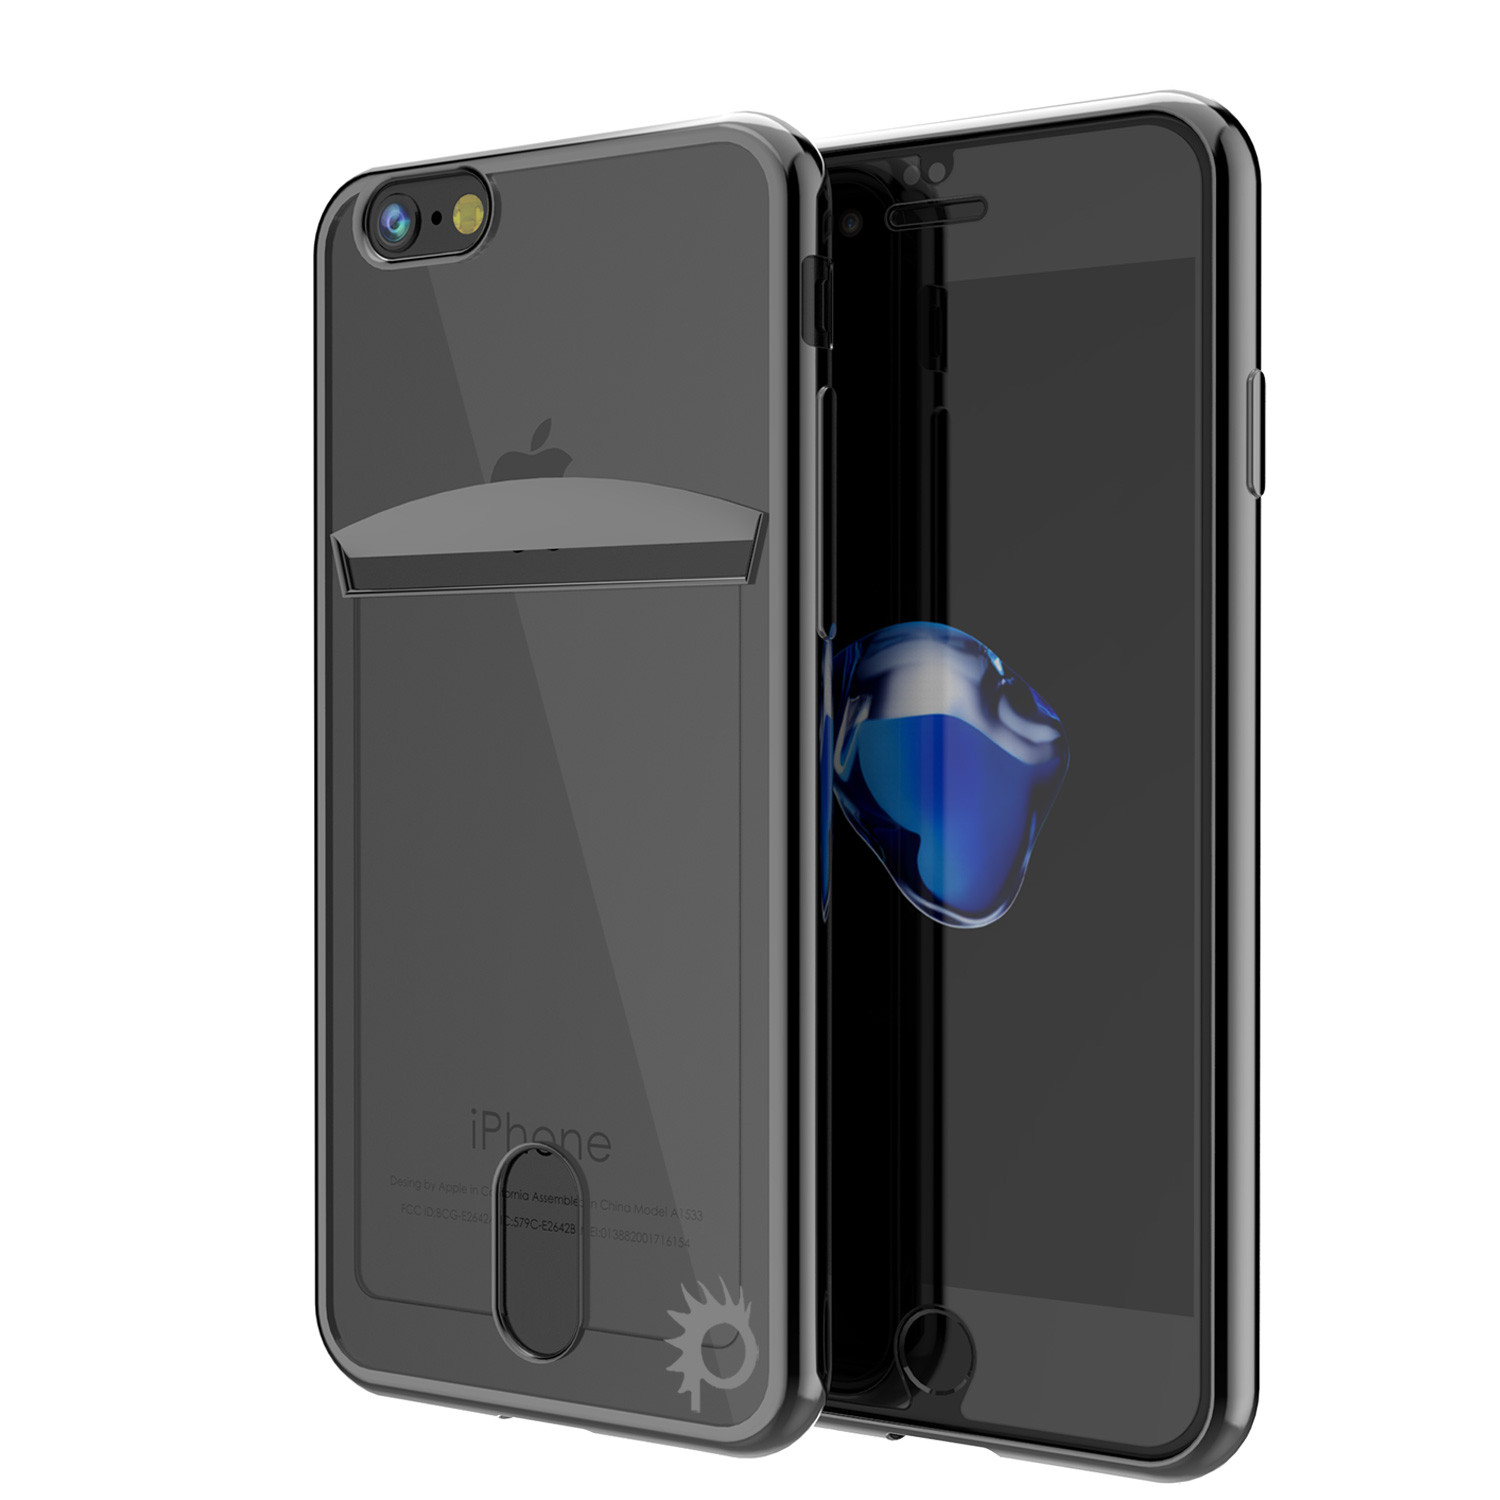 Punkcase Lucid: $14.98 for iPhone 7, $14.98 for iPhone 6/6S